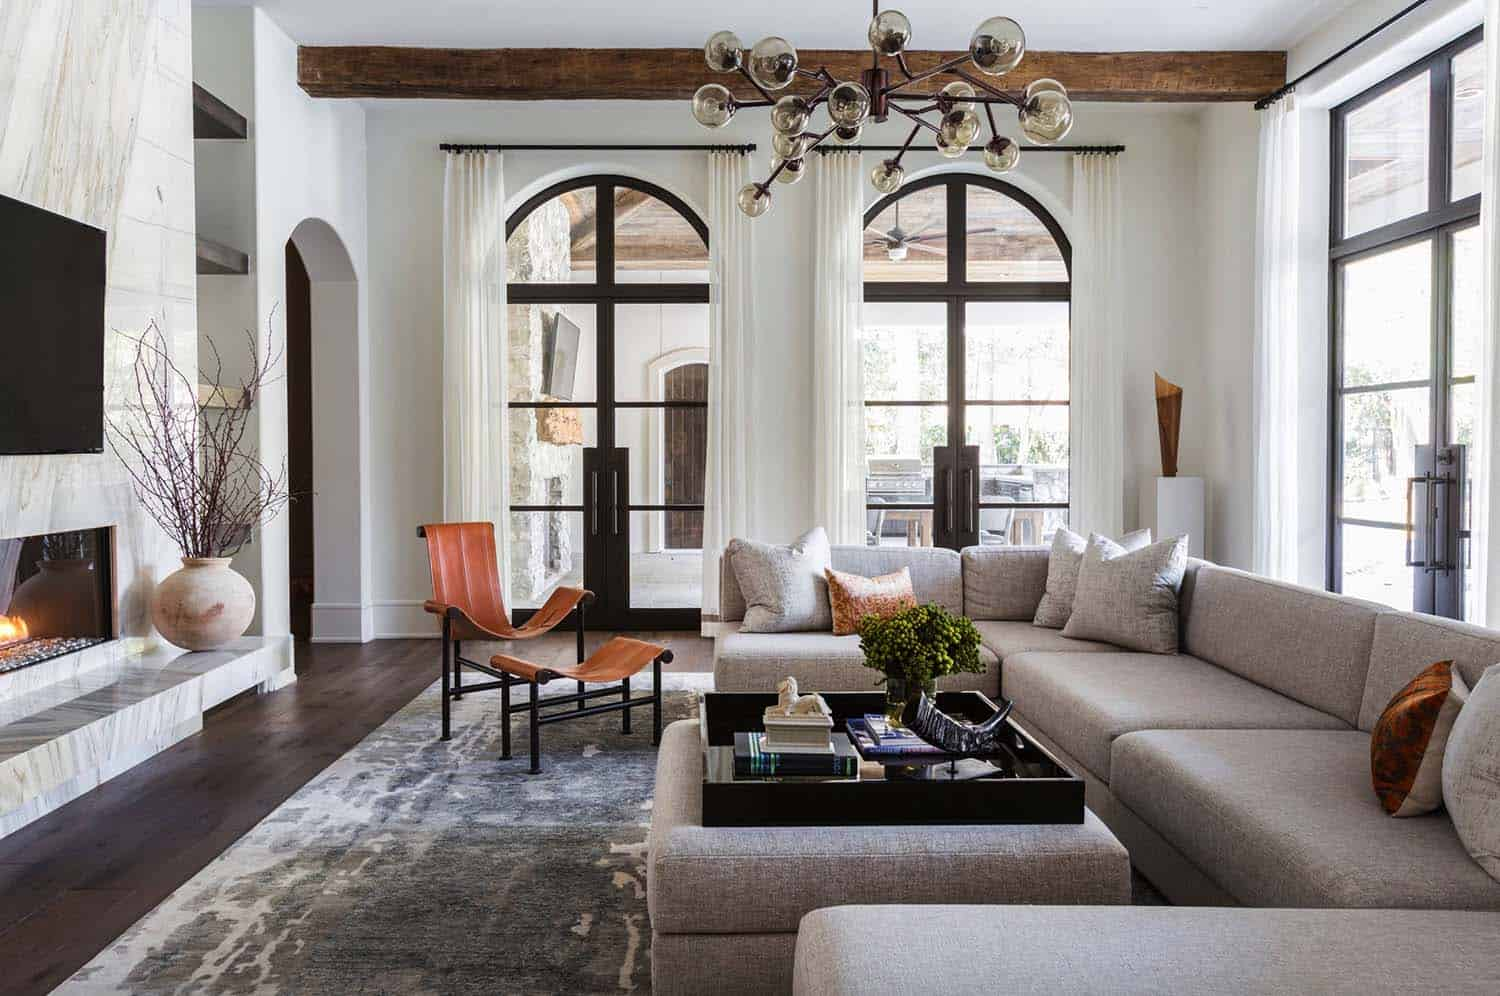 Mediterranean Style Home-Marie Flanigan Interiors-02-1 Kindesign